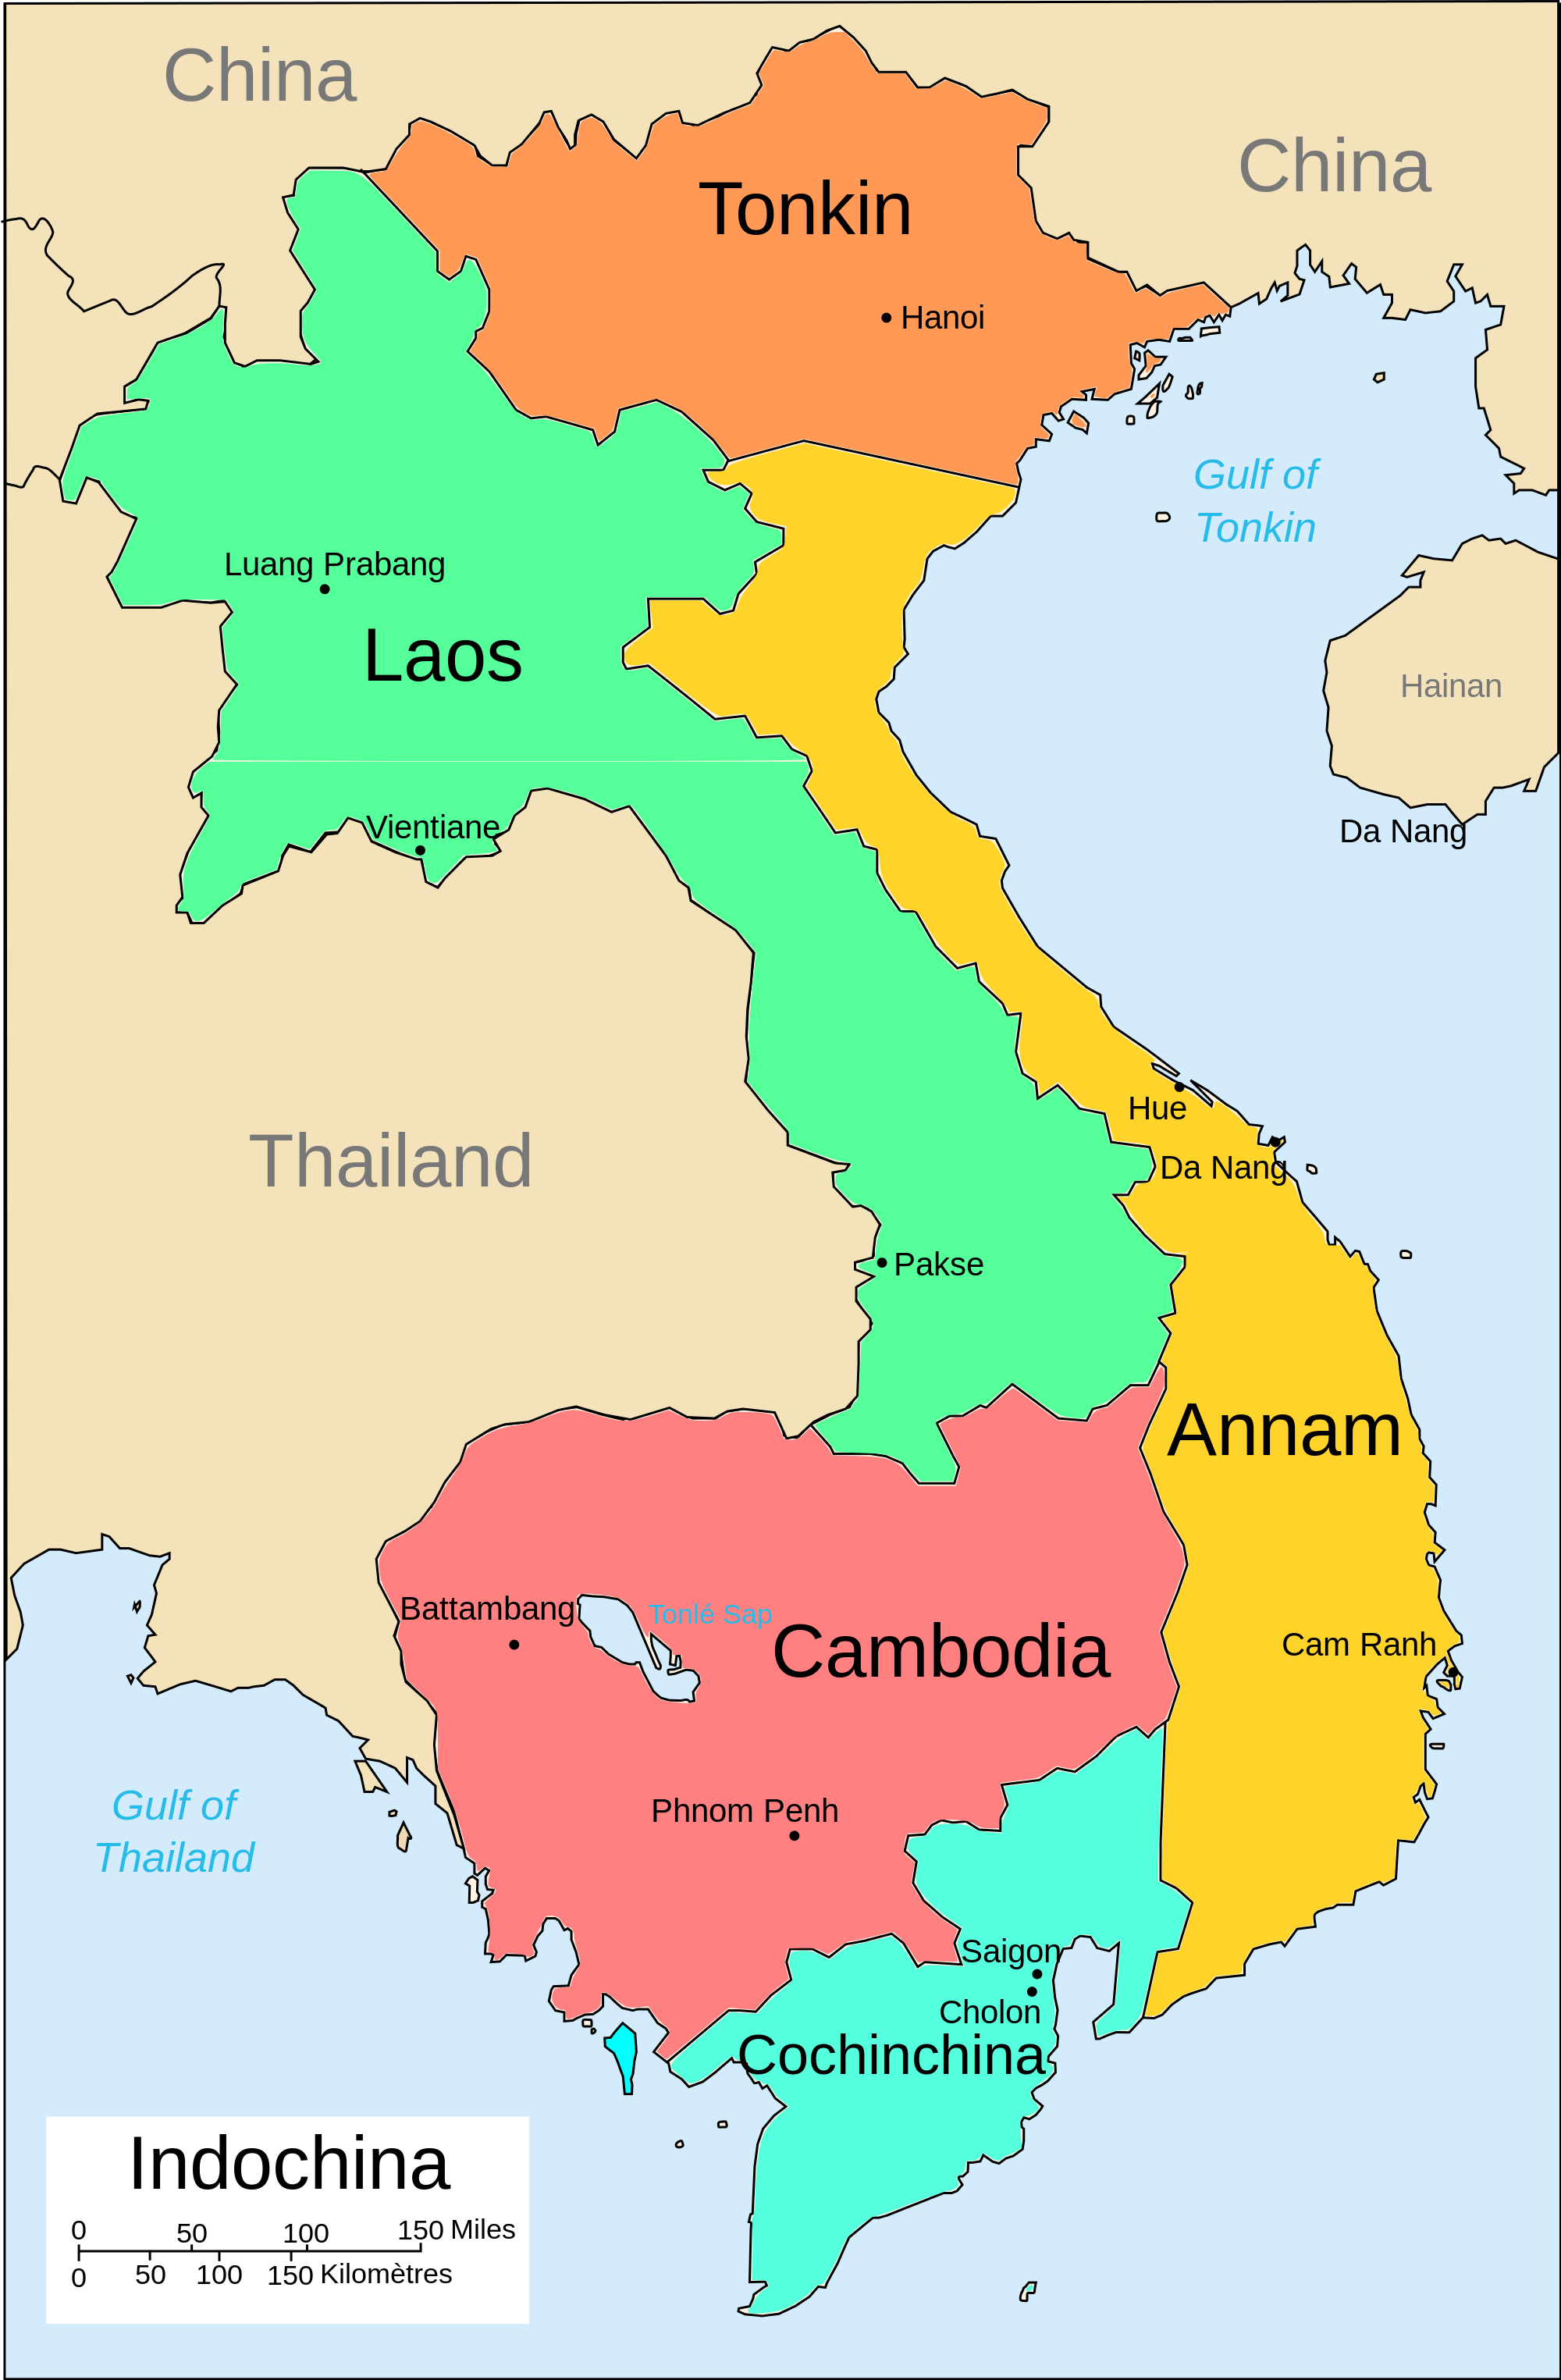 a history of indochina Describe events in indochina after  4 witness history audio hld 4 war in southeast asia objectives • describe events in indochina after world war ii.